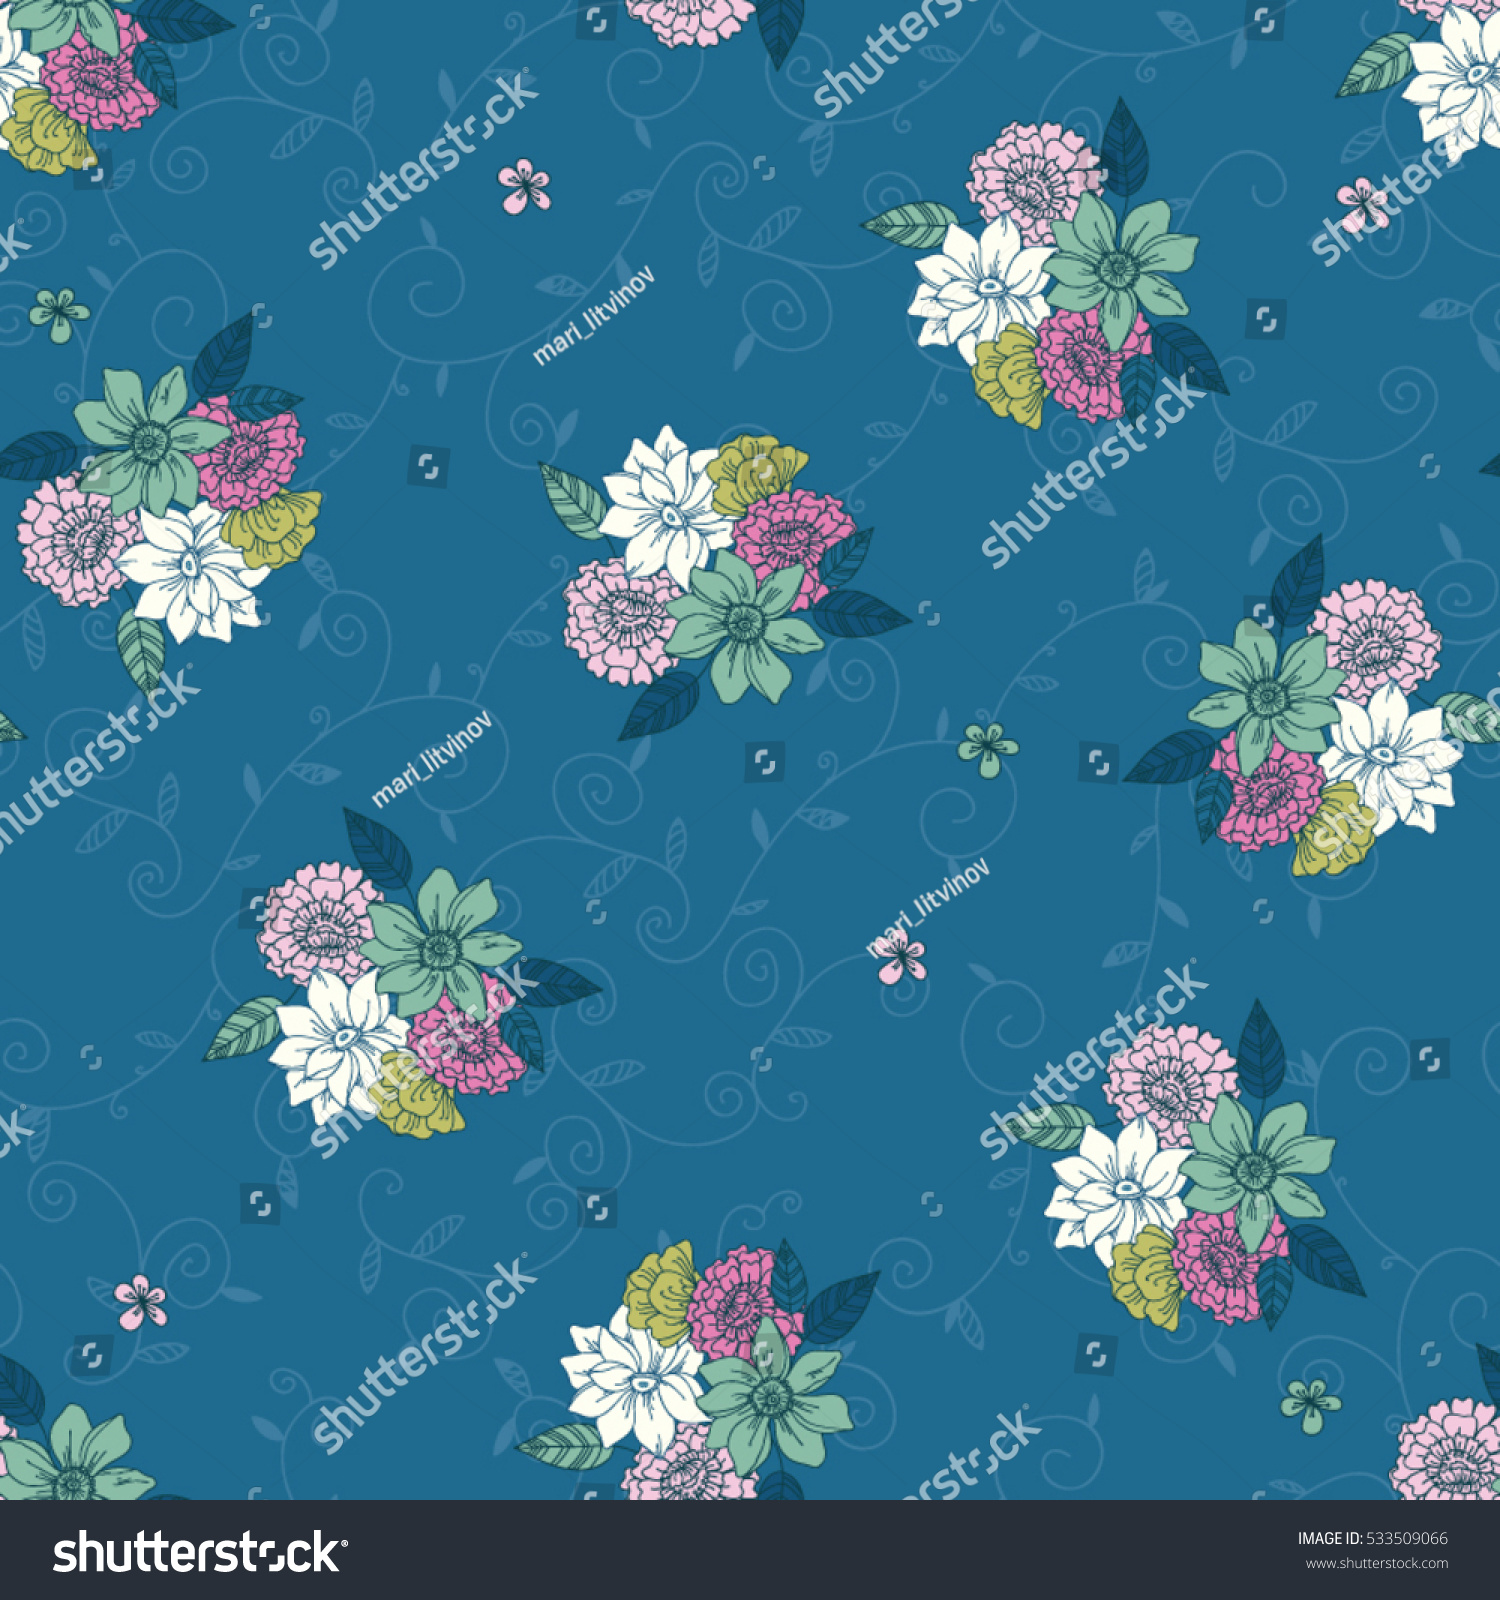 Pink floral seamless vector background floral hrysanthemum seamless - Vector Seamless Hand Drawn Pattern Of Daisy Lilly Chrysanthemum And Leaves Floral Vintage